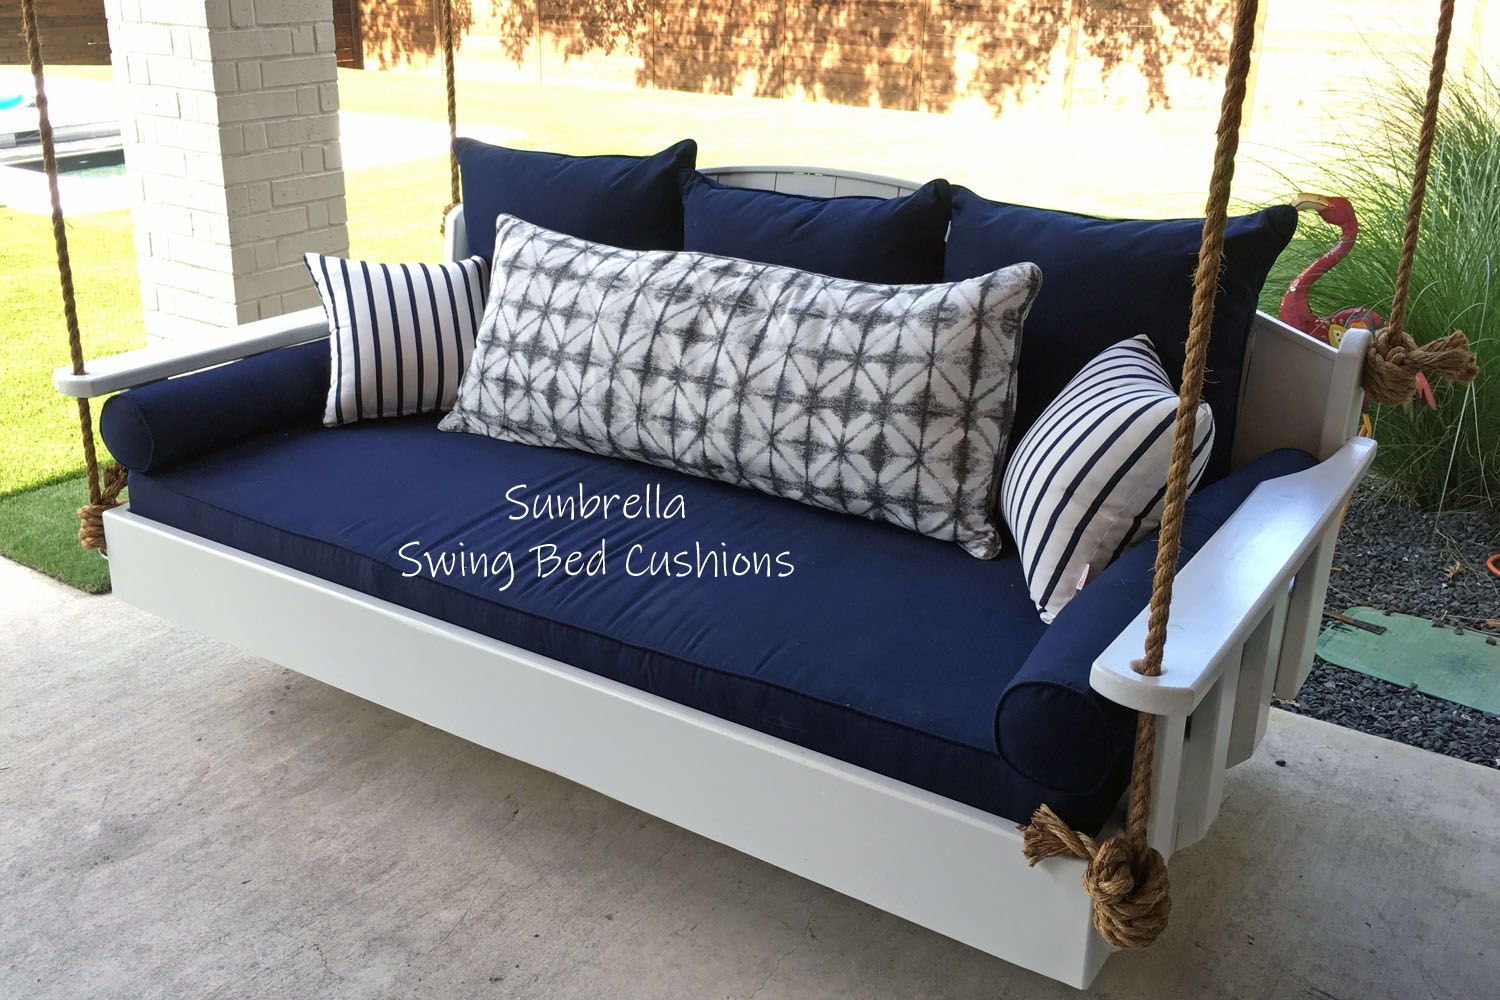 Sunbrella Outdoor Daybed Cushion Set Bolsters Back Pillows Etsy Porch Swing Cushions Outdoor Daybed Cushion Daybed Swing